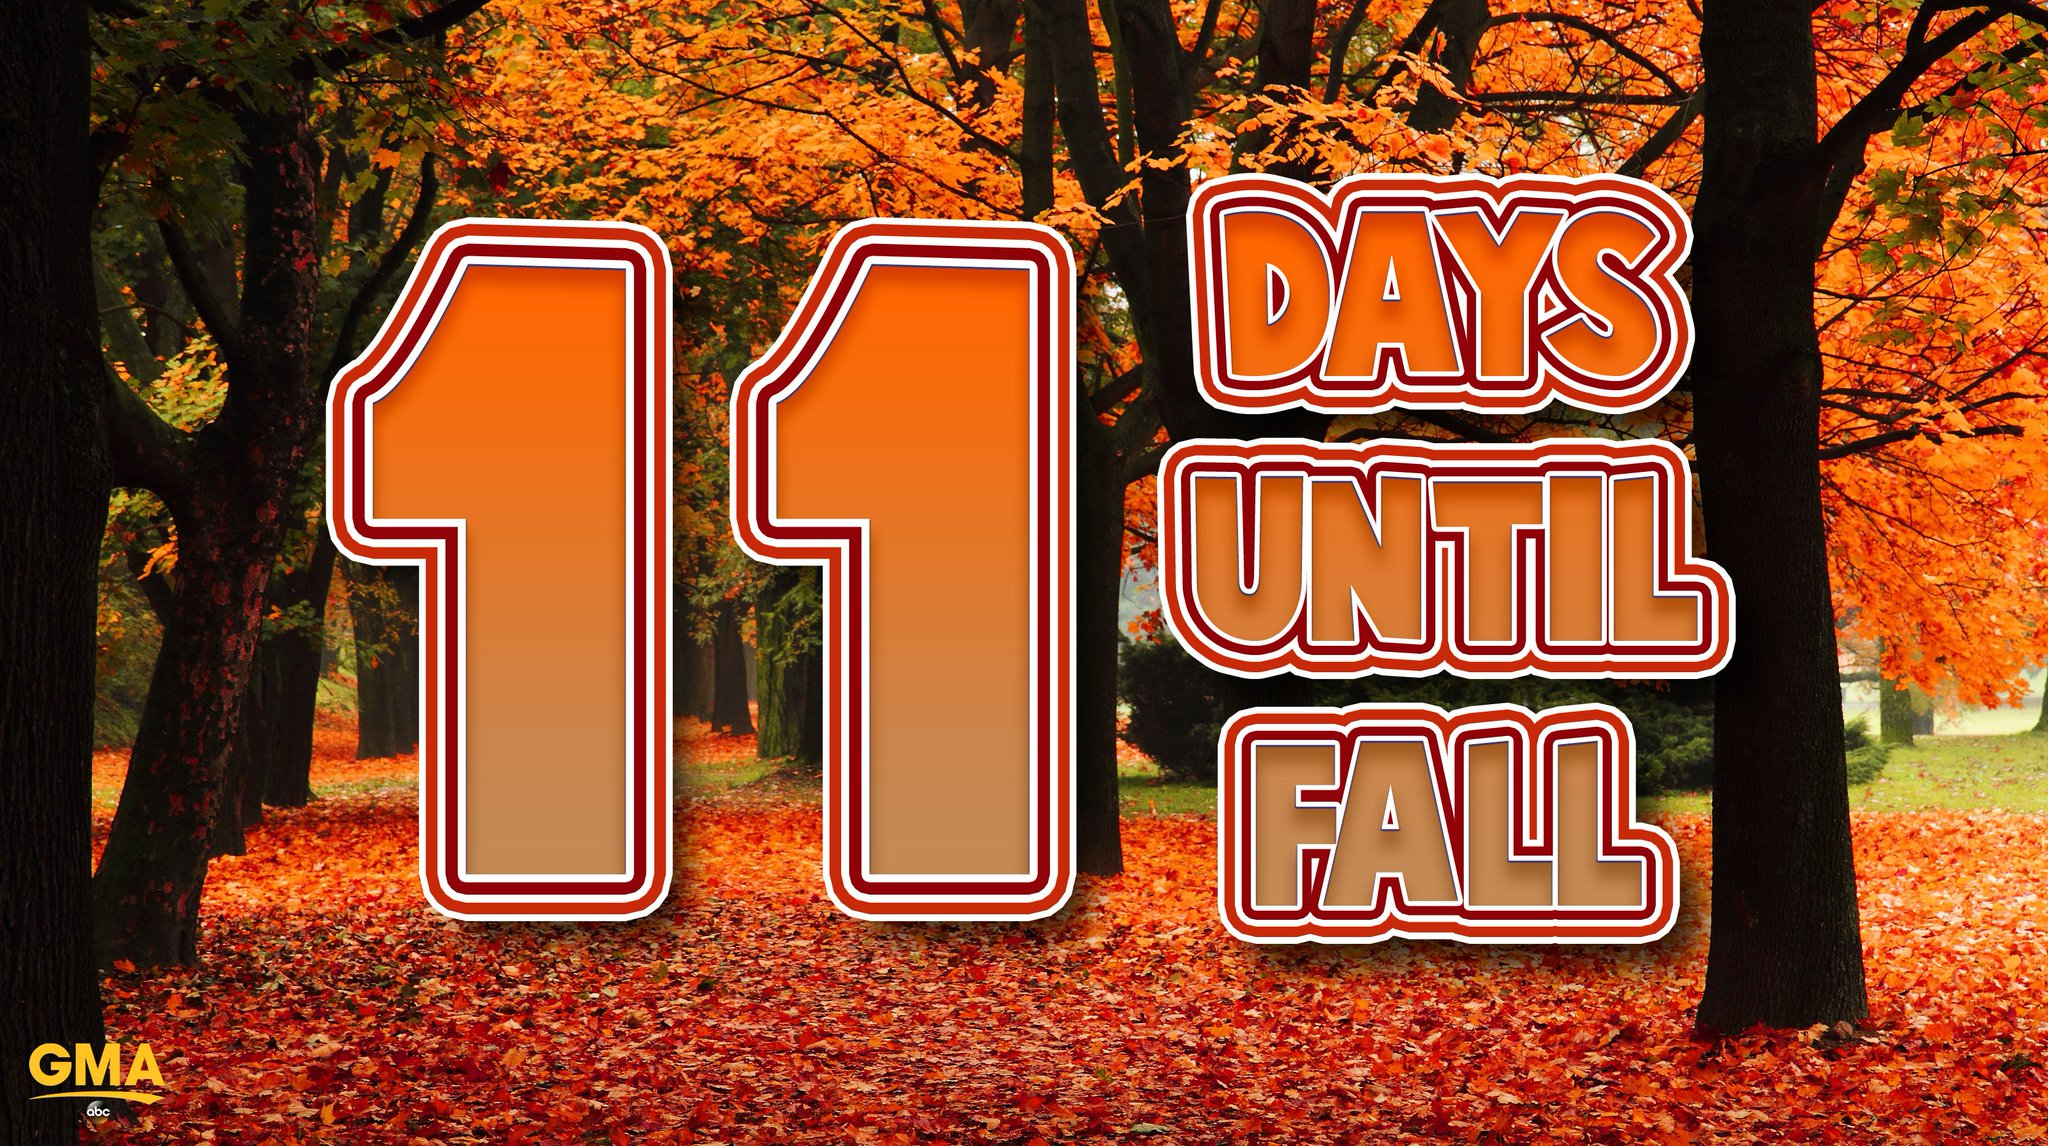 11 DAYS UNTIL FALL! �� https://t.co/aW5PnjahU1